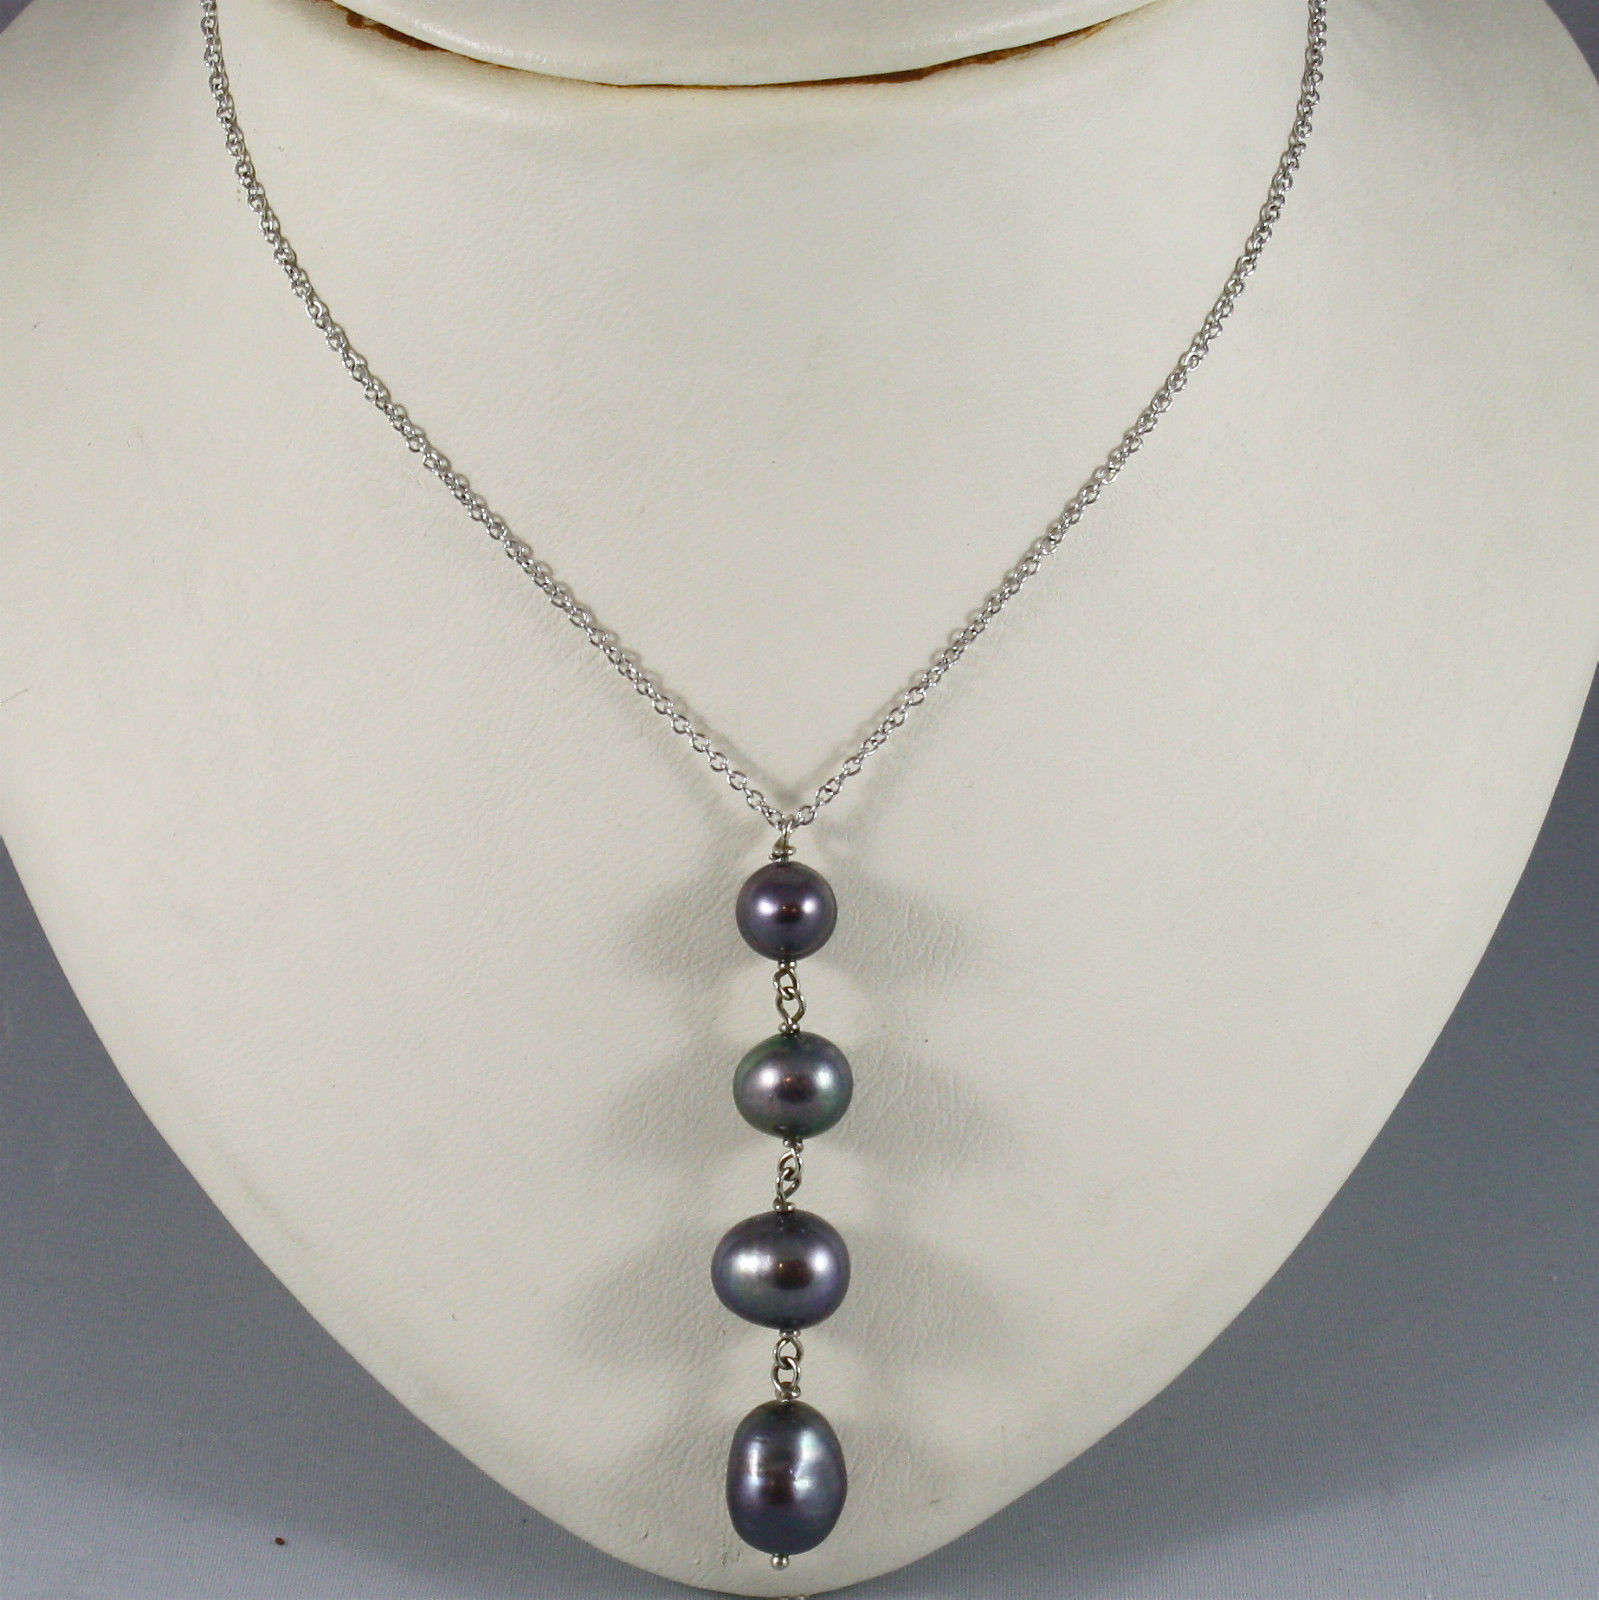 18K WHITE GOLD NECKLACE WITH PENDANT, BLACK PEARL DIAMETER 1 CM MADE IN ITALY